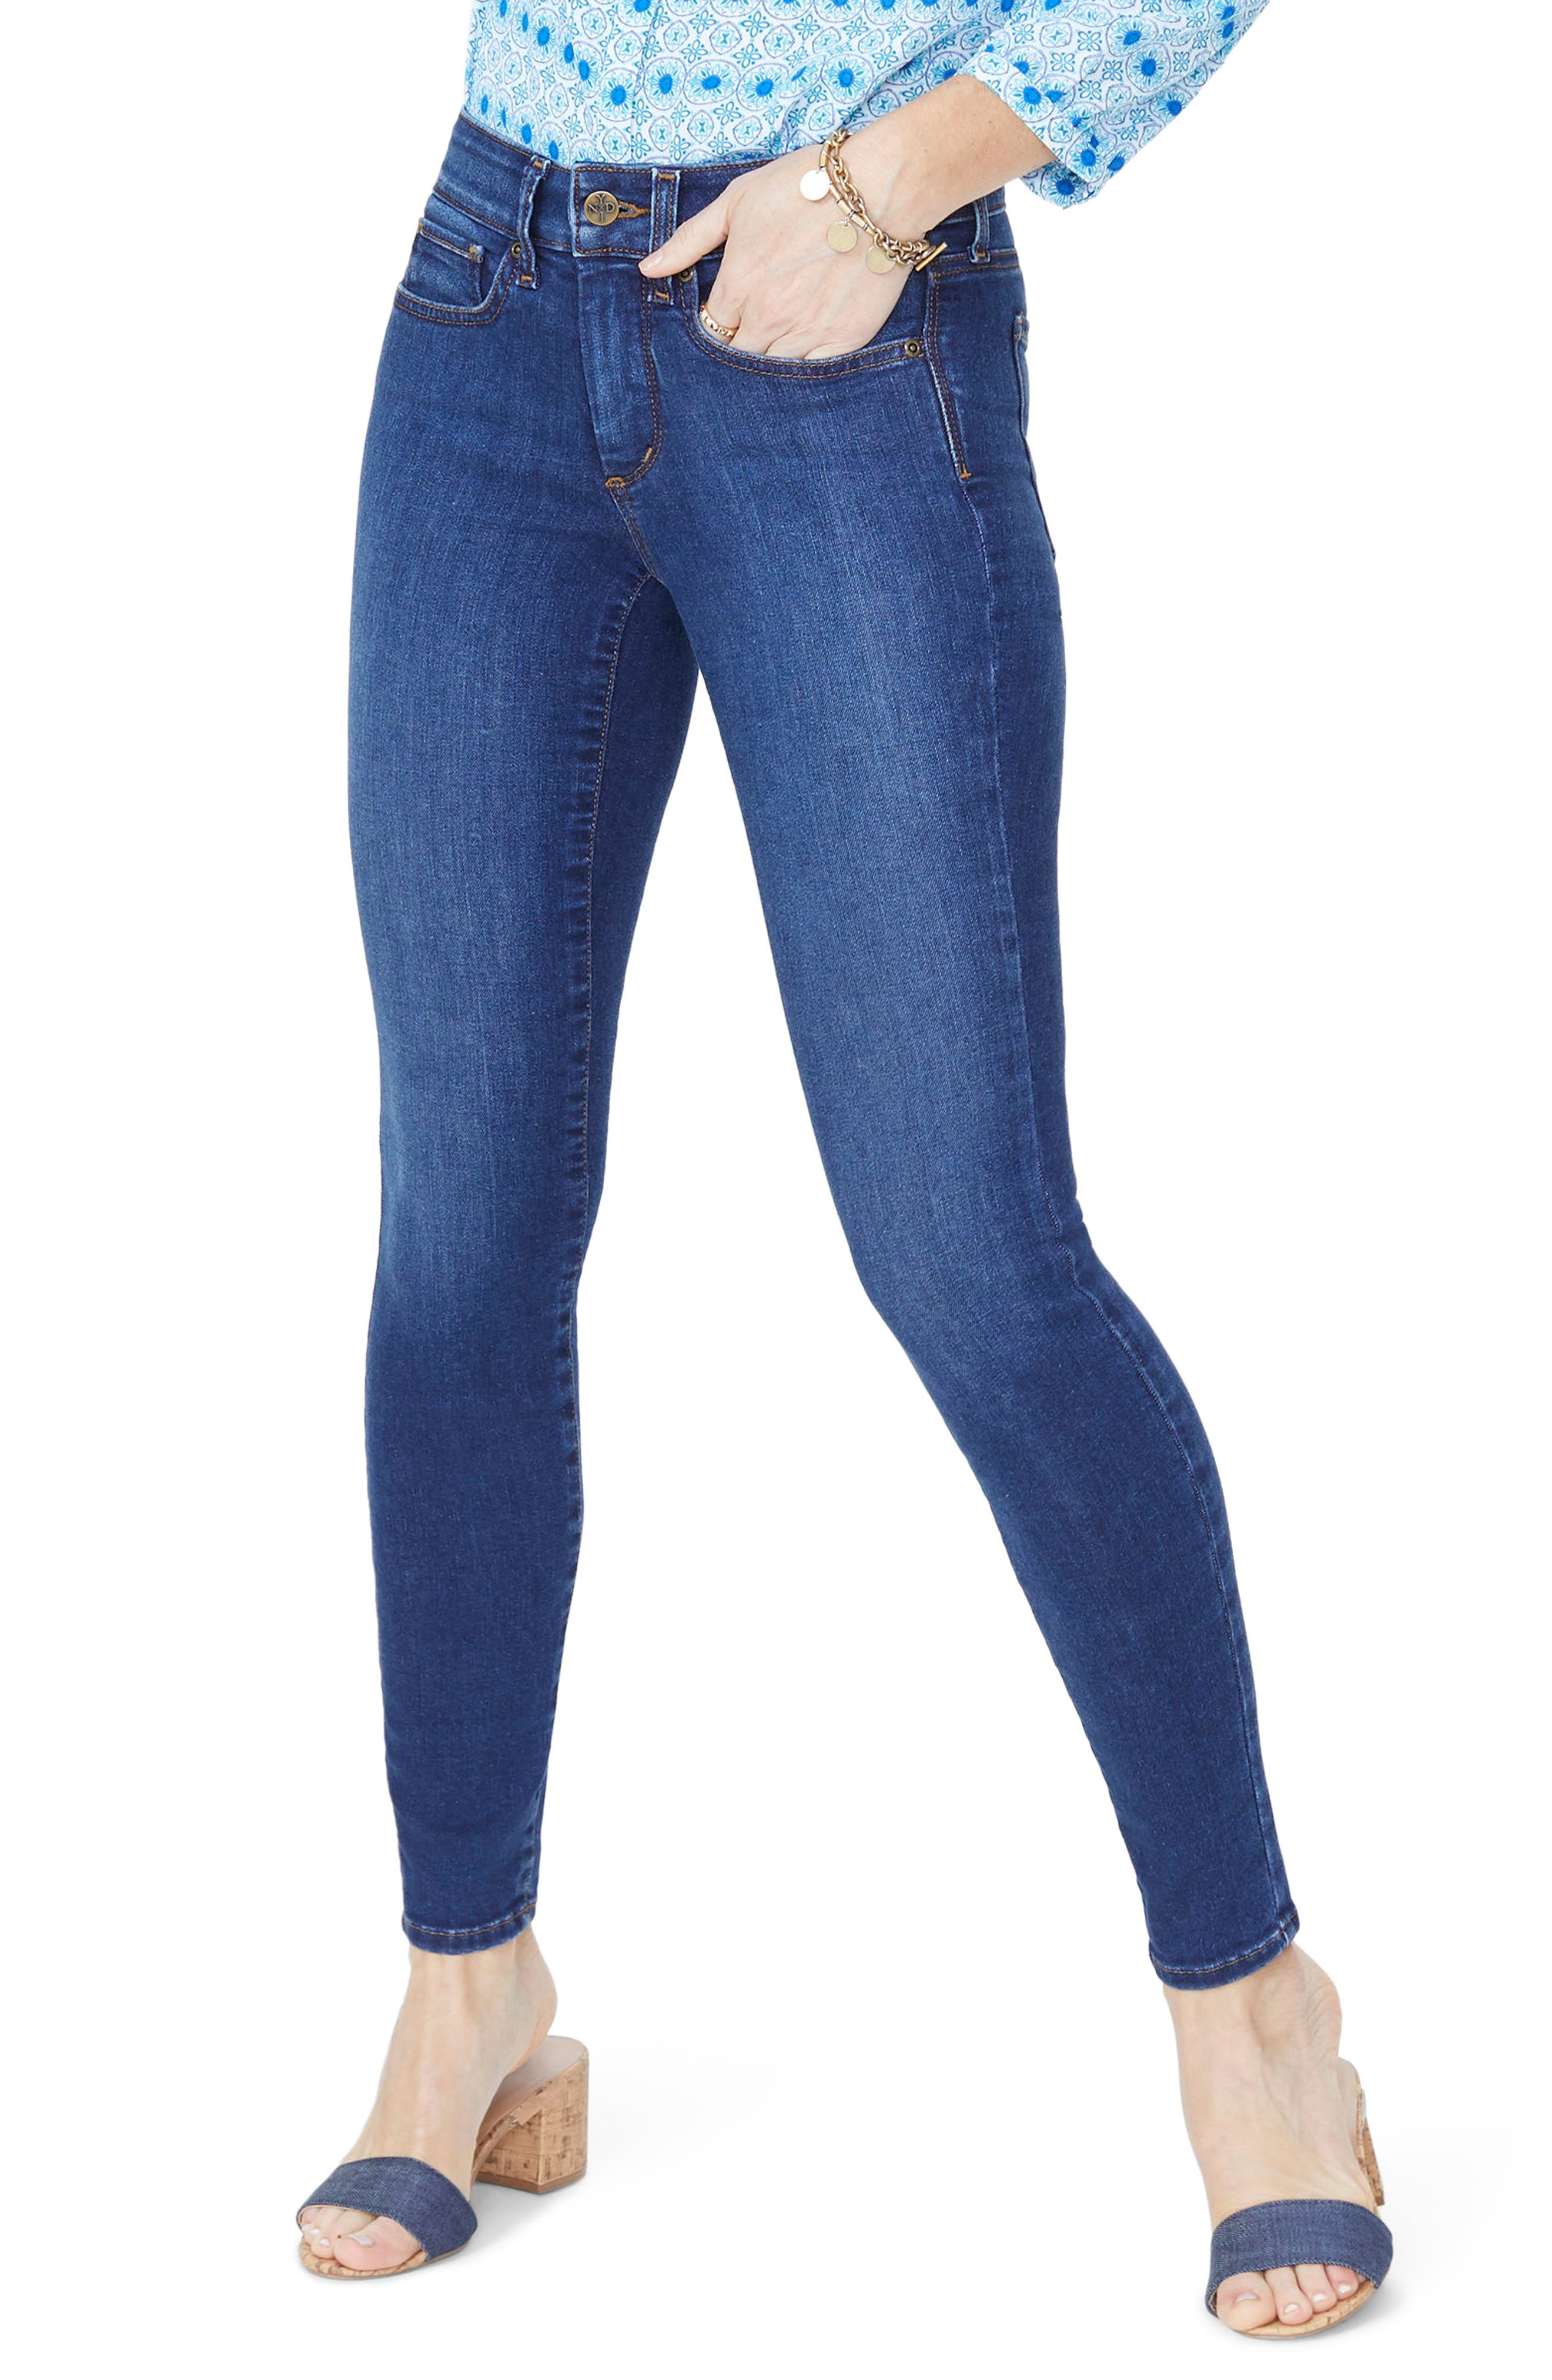 Ami High Waist Stretch Skinny Jeans,                             Main thumbnail 1, color,                             COOPER